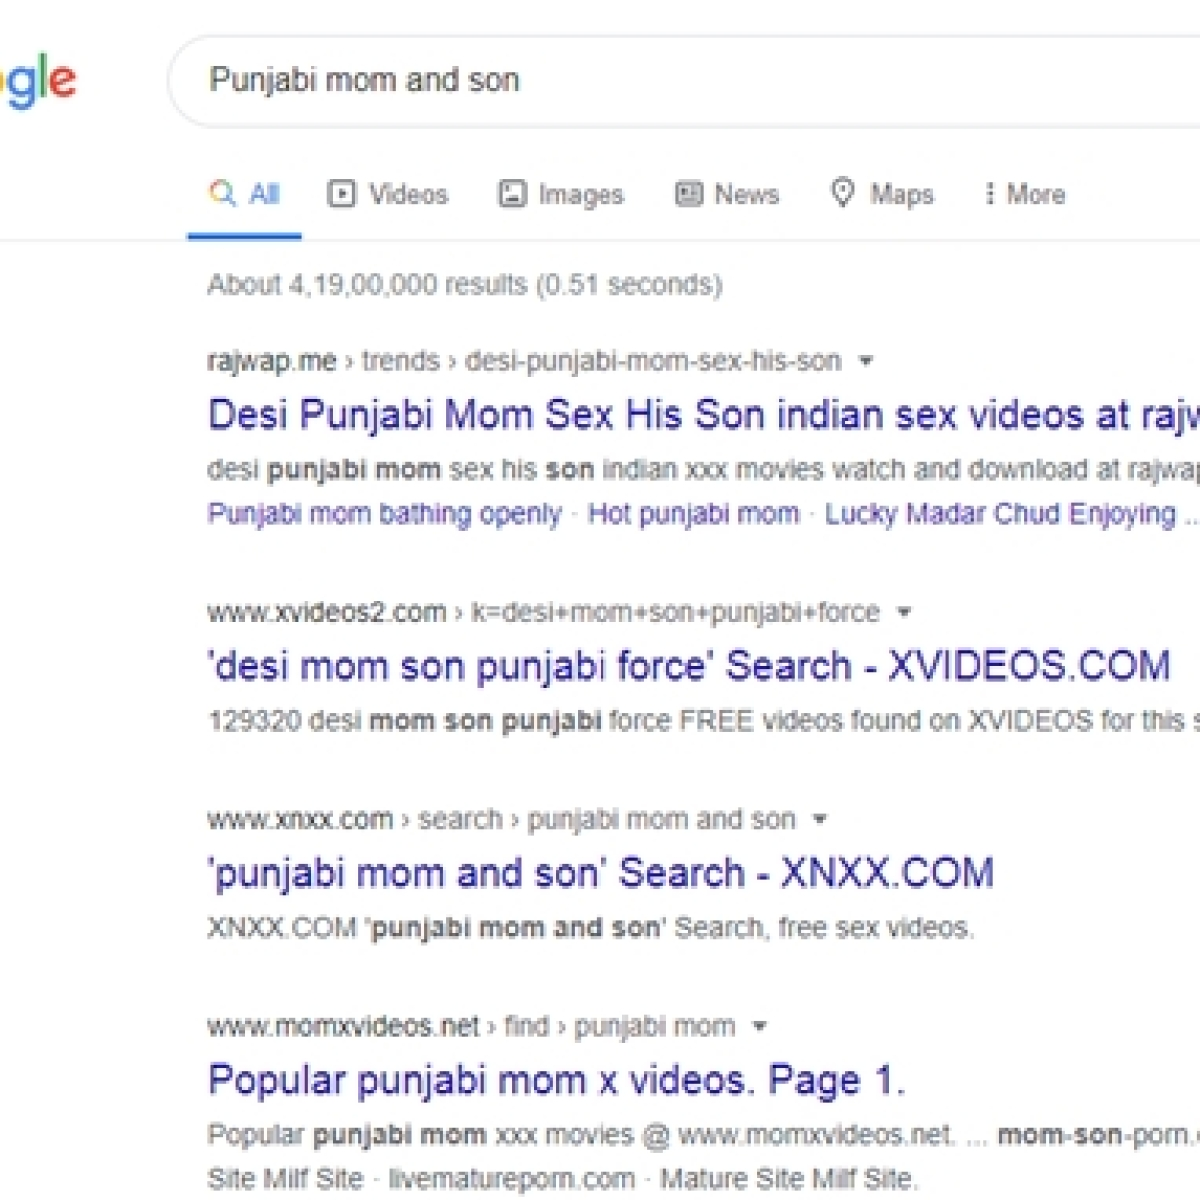 From Punjabi to Bihari mom and son: Bizarre Google search leads to porn sites